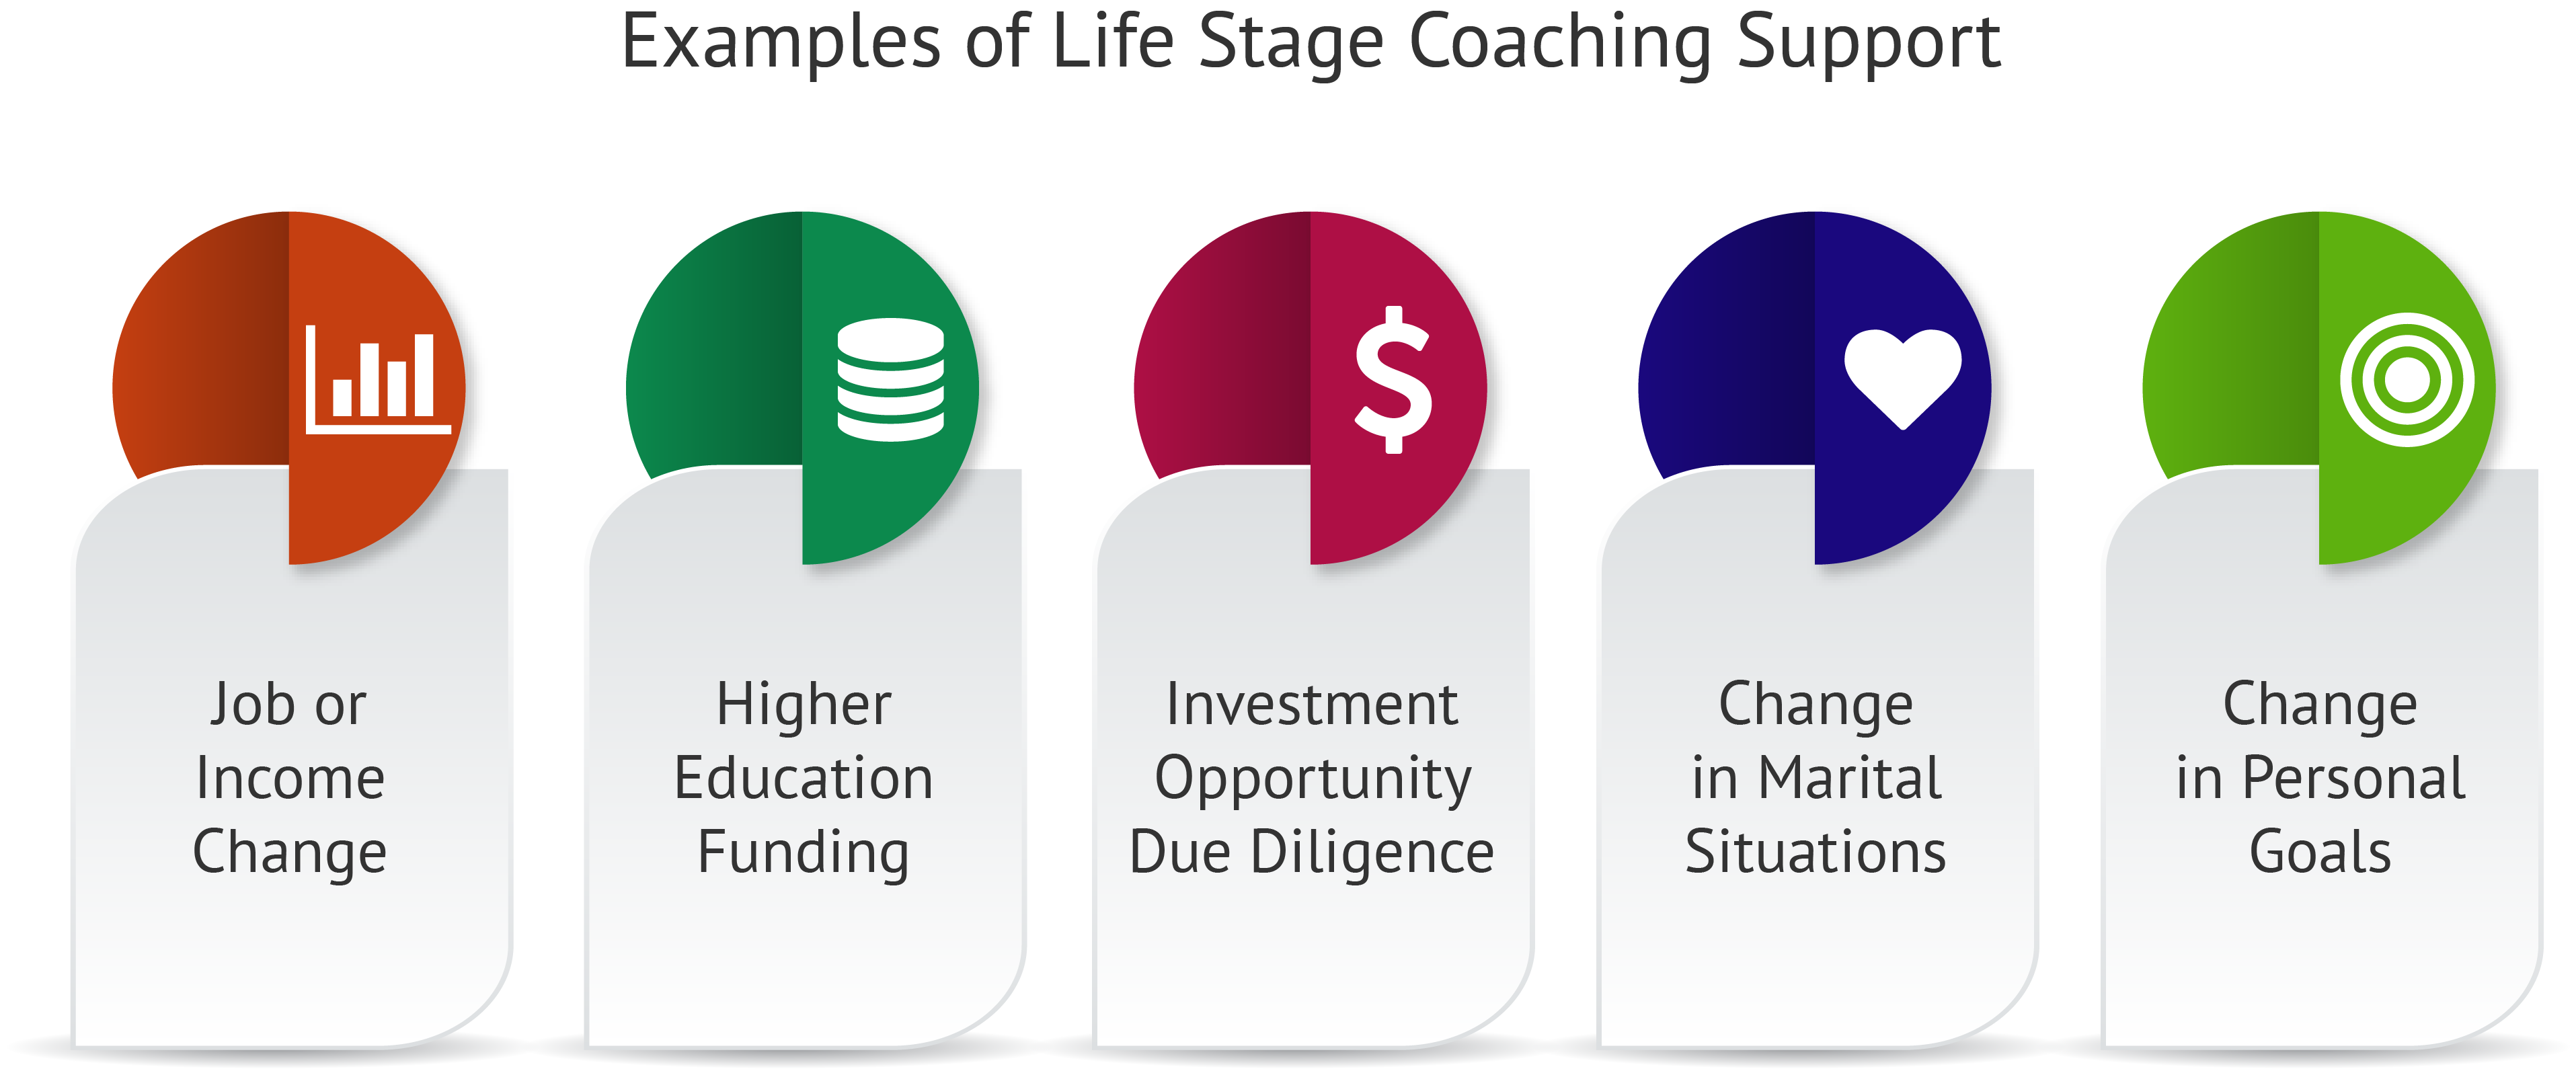 Suggestions for personal finance coach Measurements